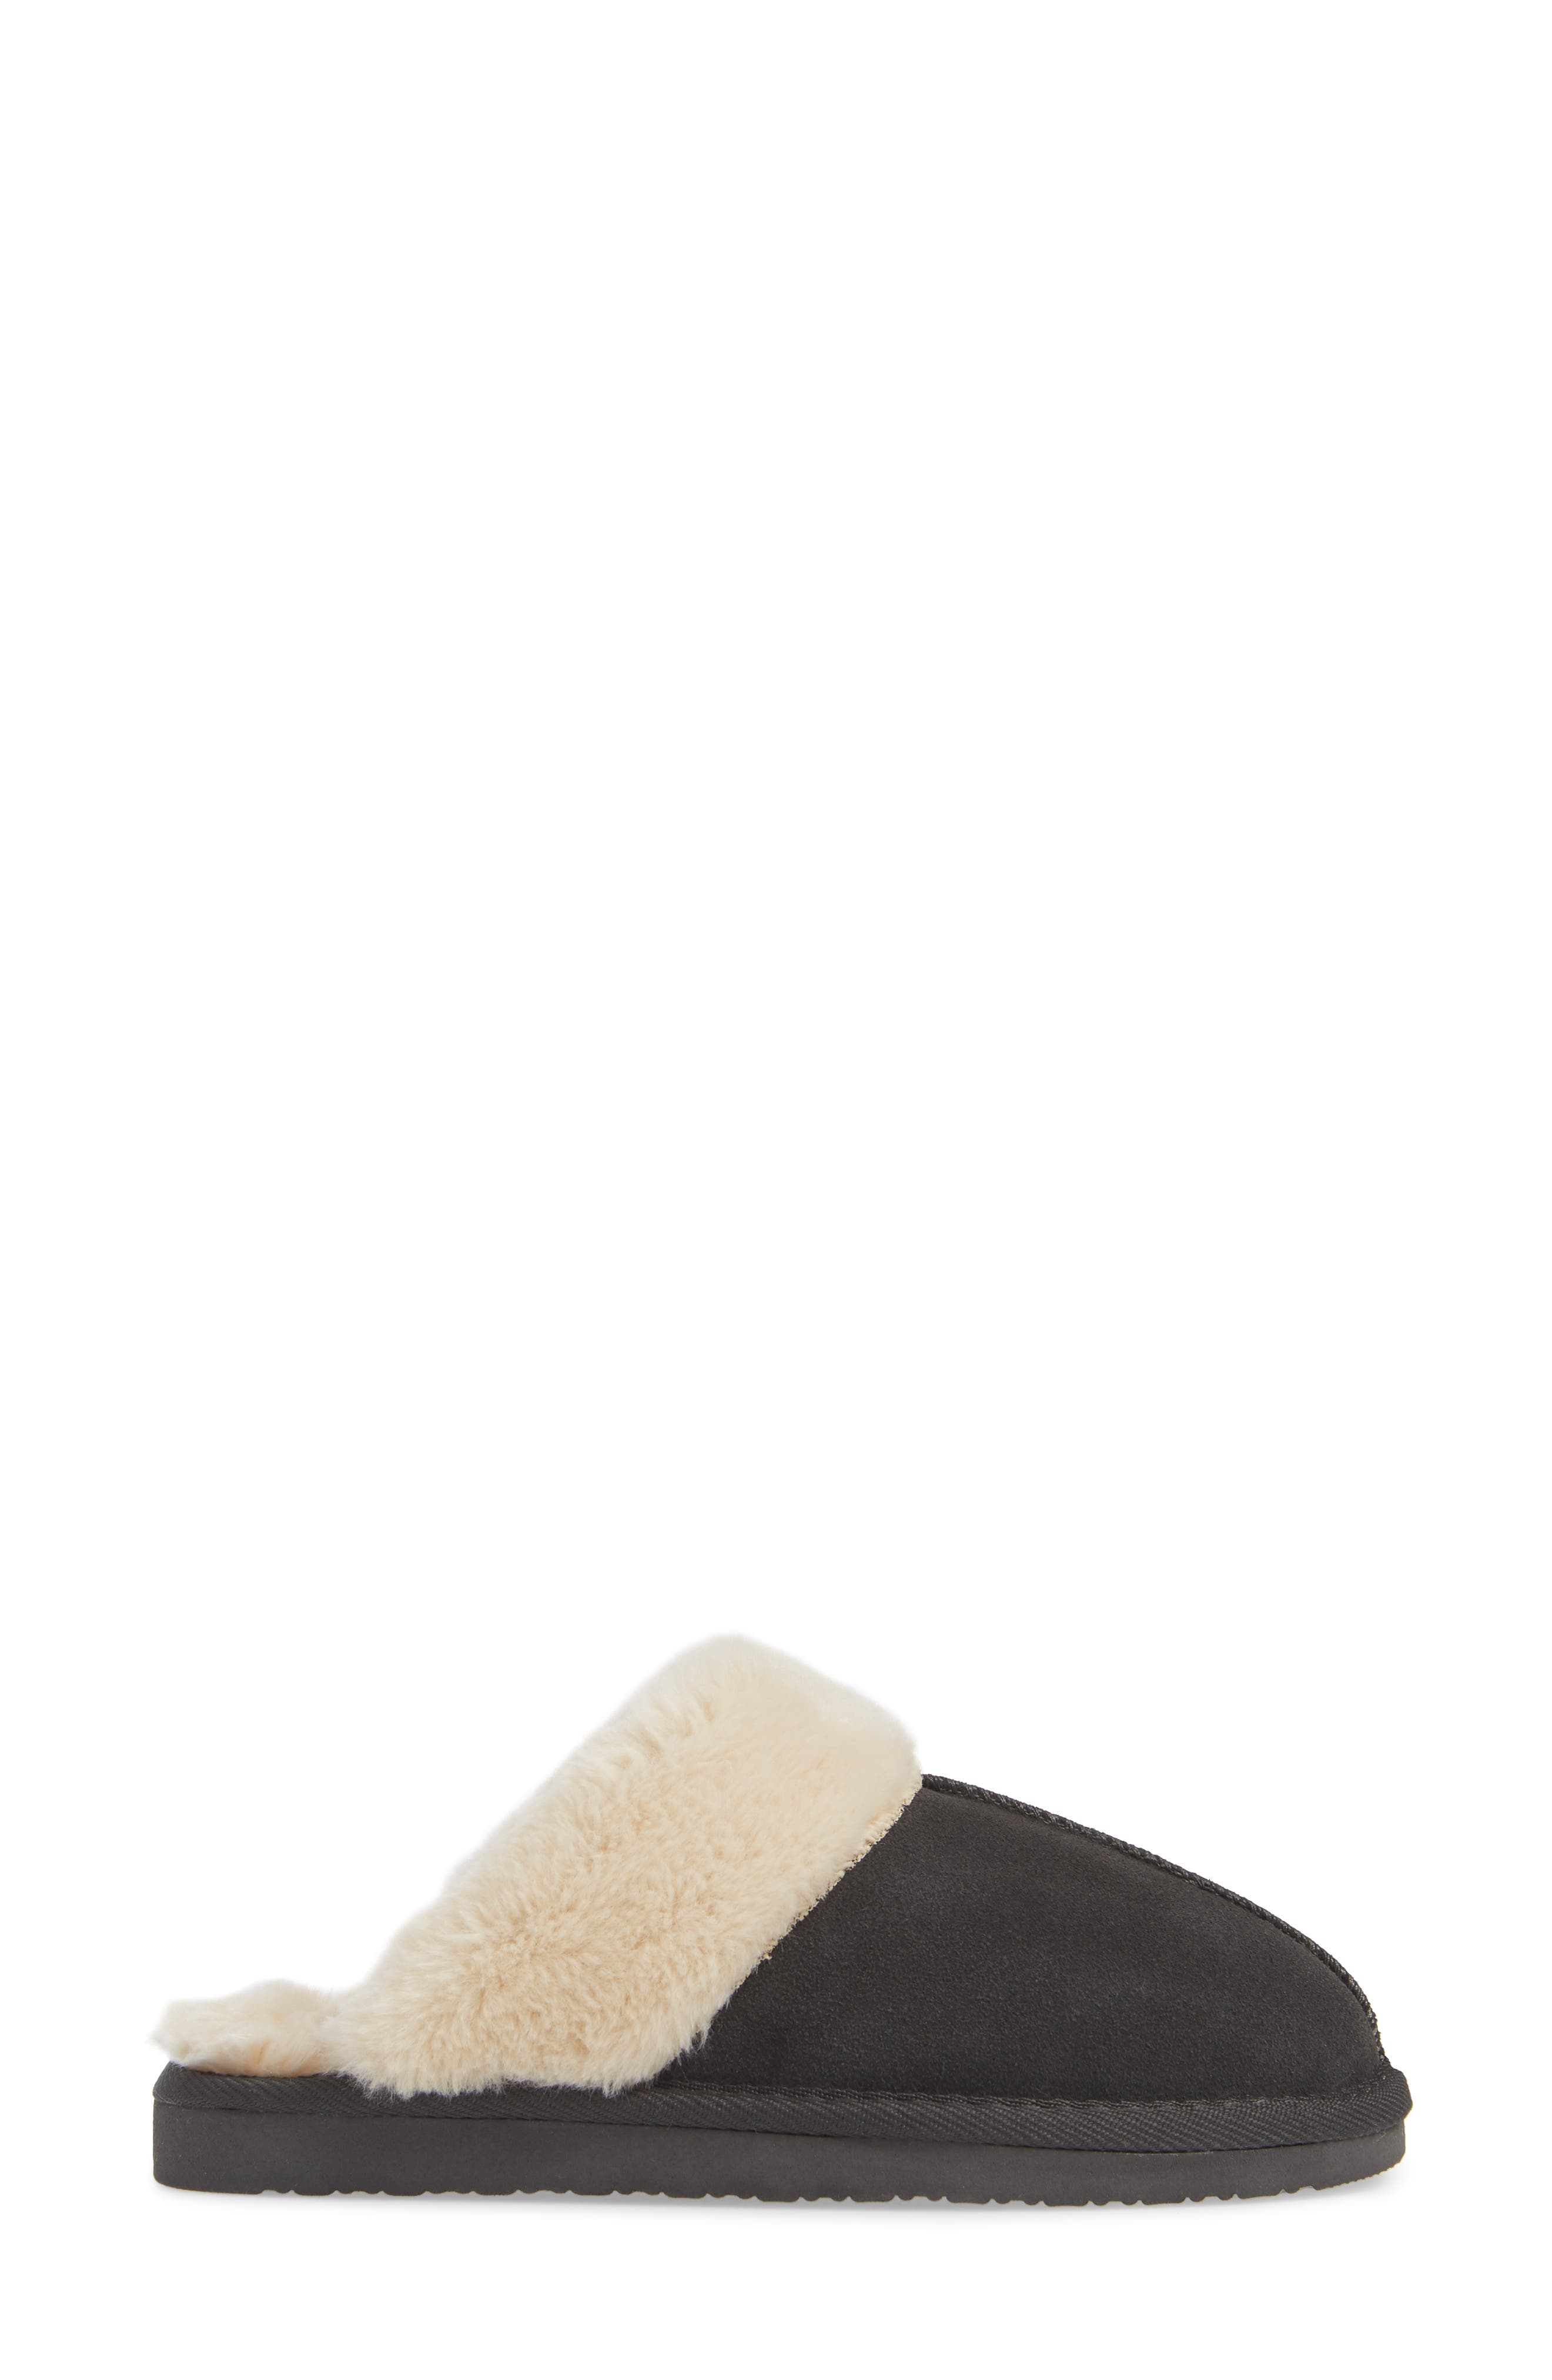 MINNETONKA, Mule Slipper, Alternate thumbnail 3, color, CHARCOAL SUEDE